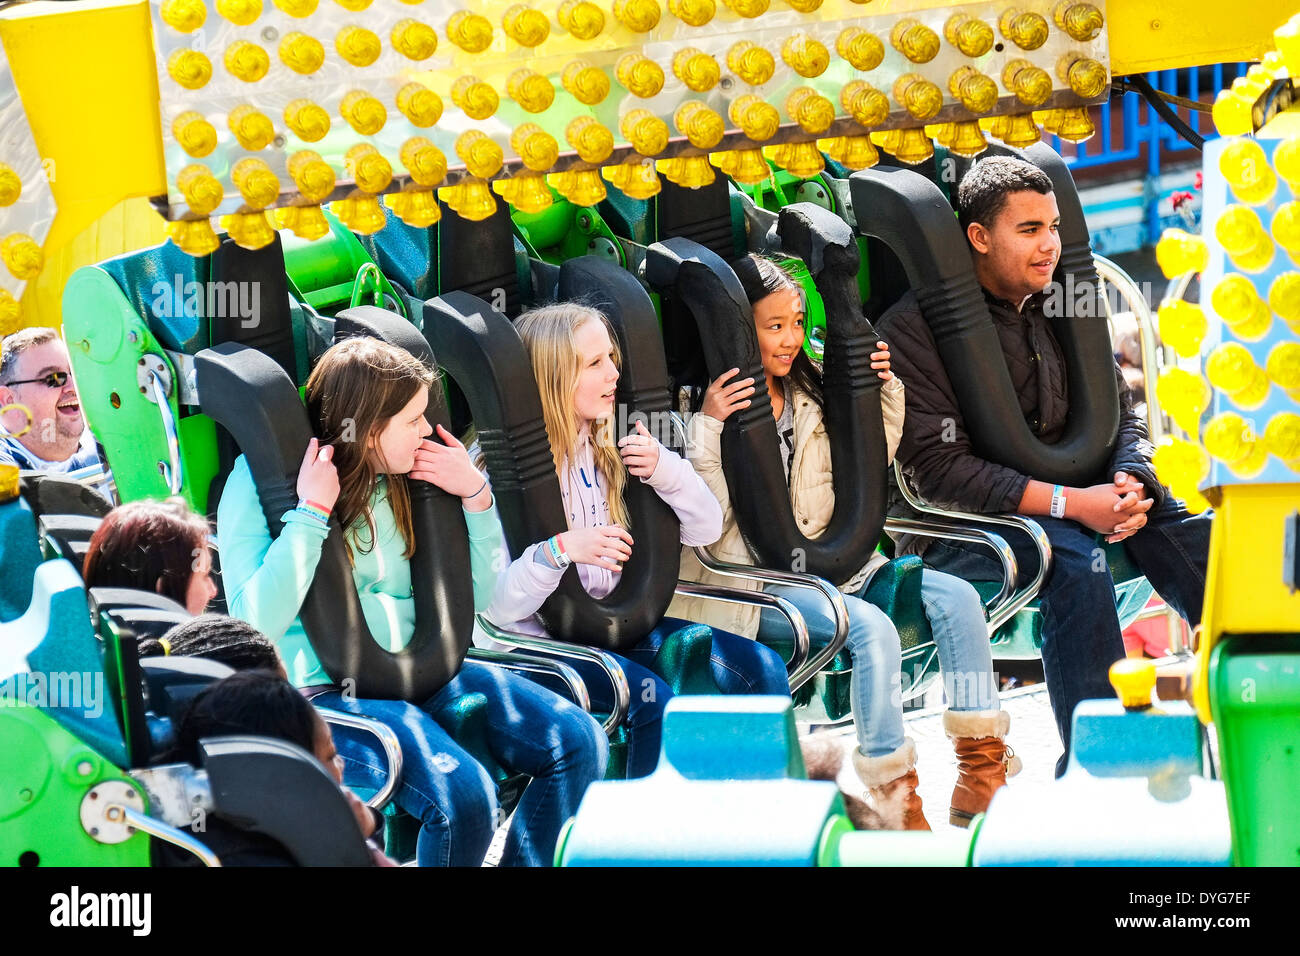 People waiting for a fairground ride to start. - Stock Image